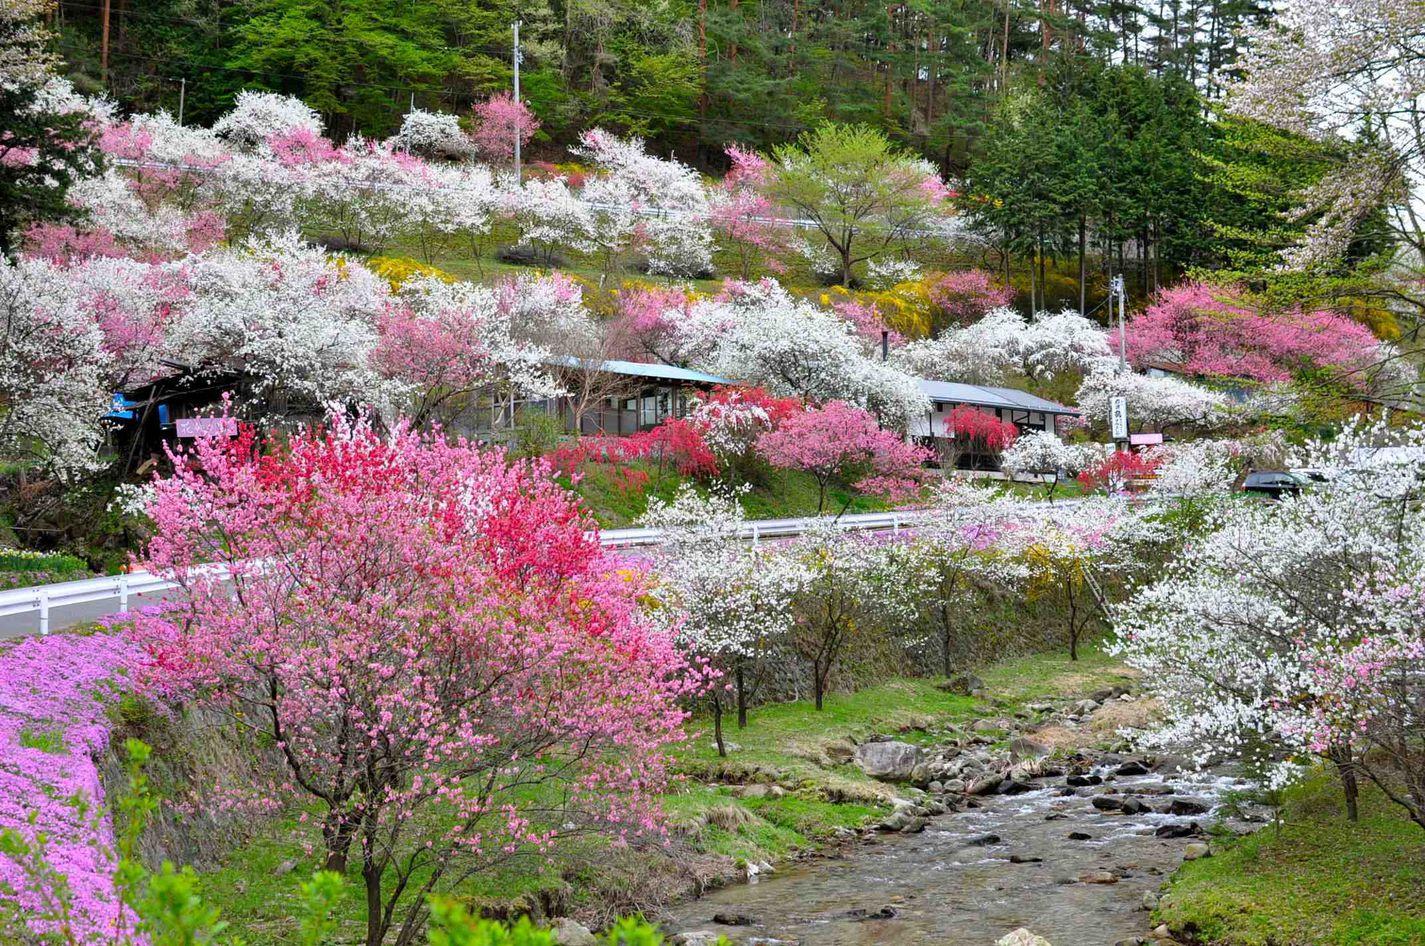 Village of Peach Flower(in Nakazawa District)